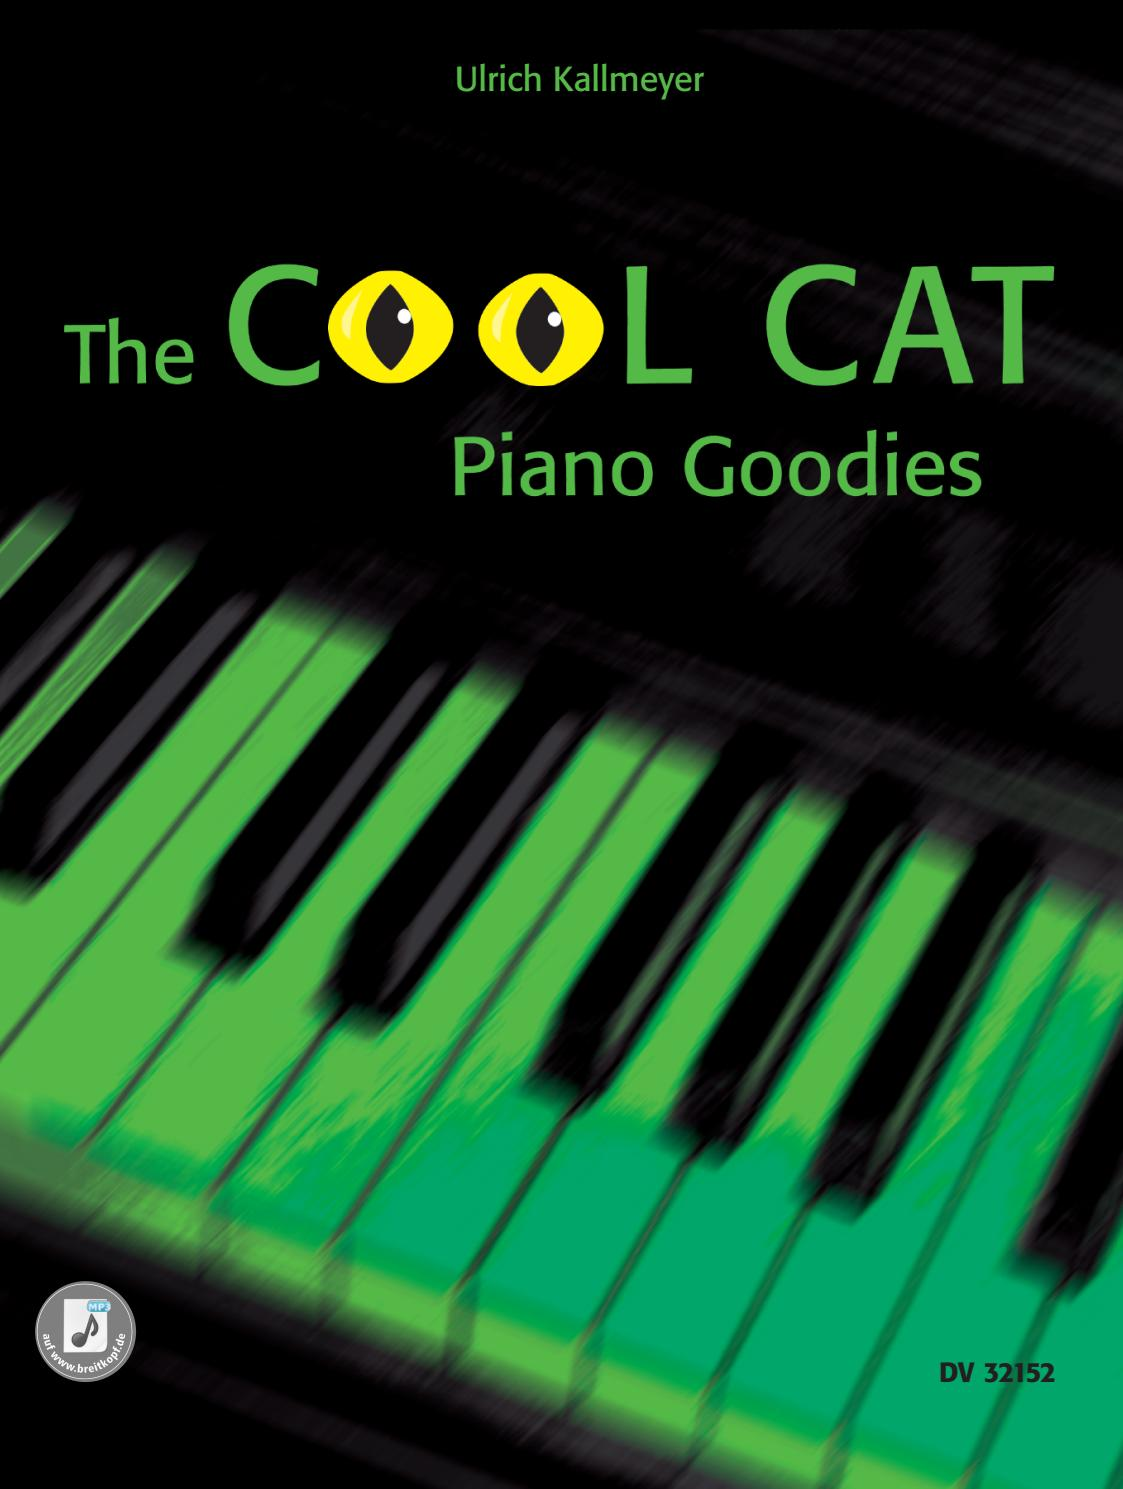 DV 8 – Kallmeyer, The Cool Cat Piano Goodies by Breitkopf